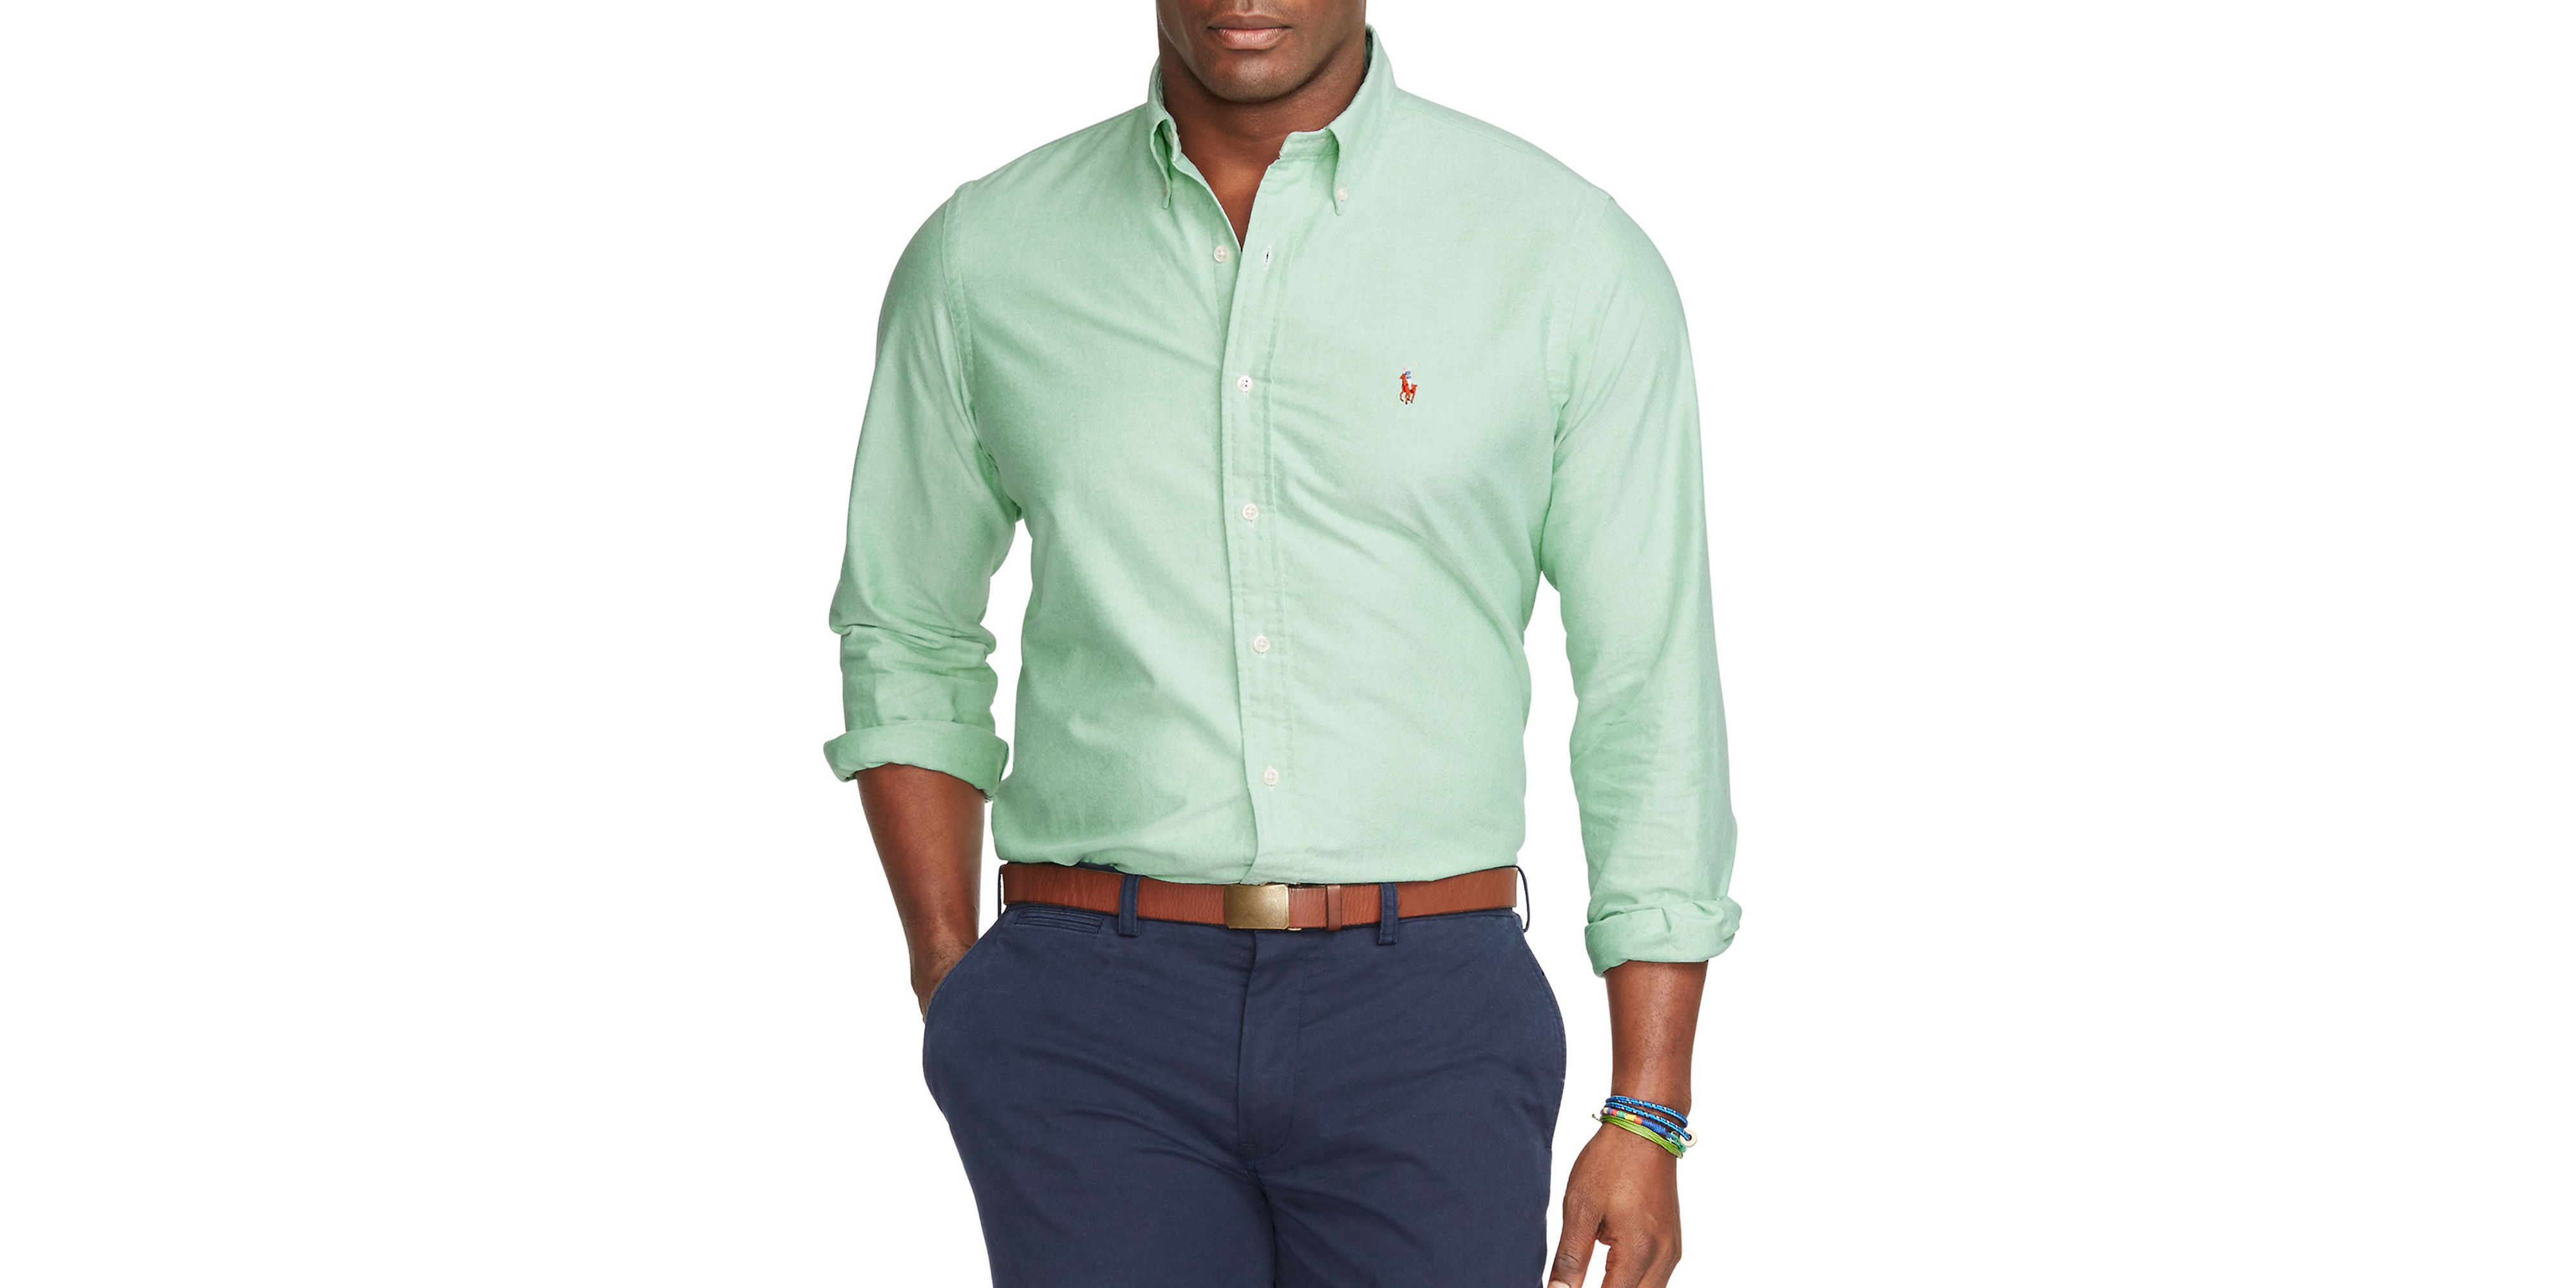 Polo ralph lauren big and tall oxford shirt in green for for Big and tall oxford shirts